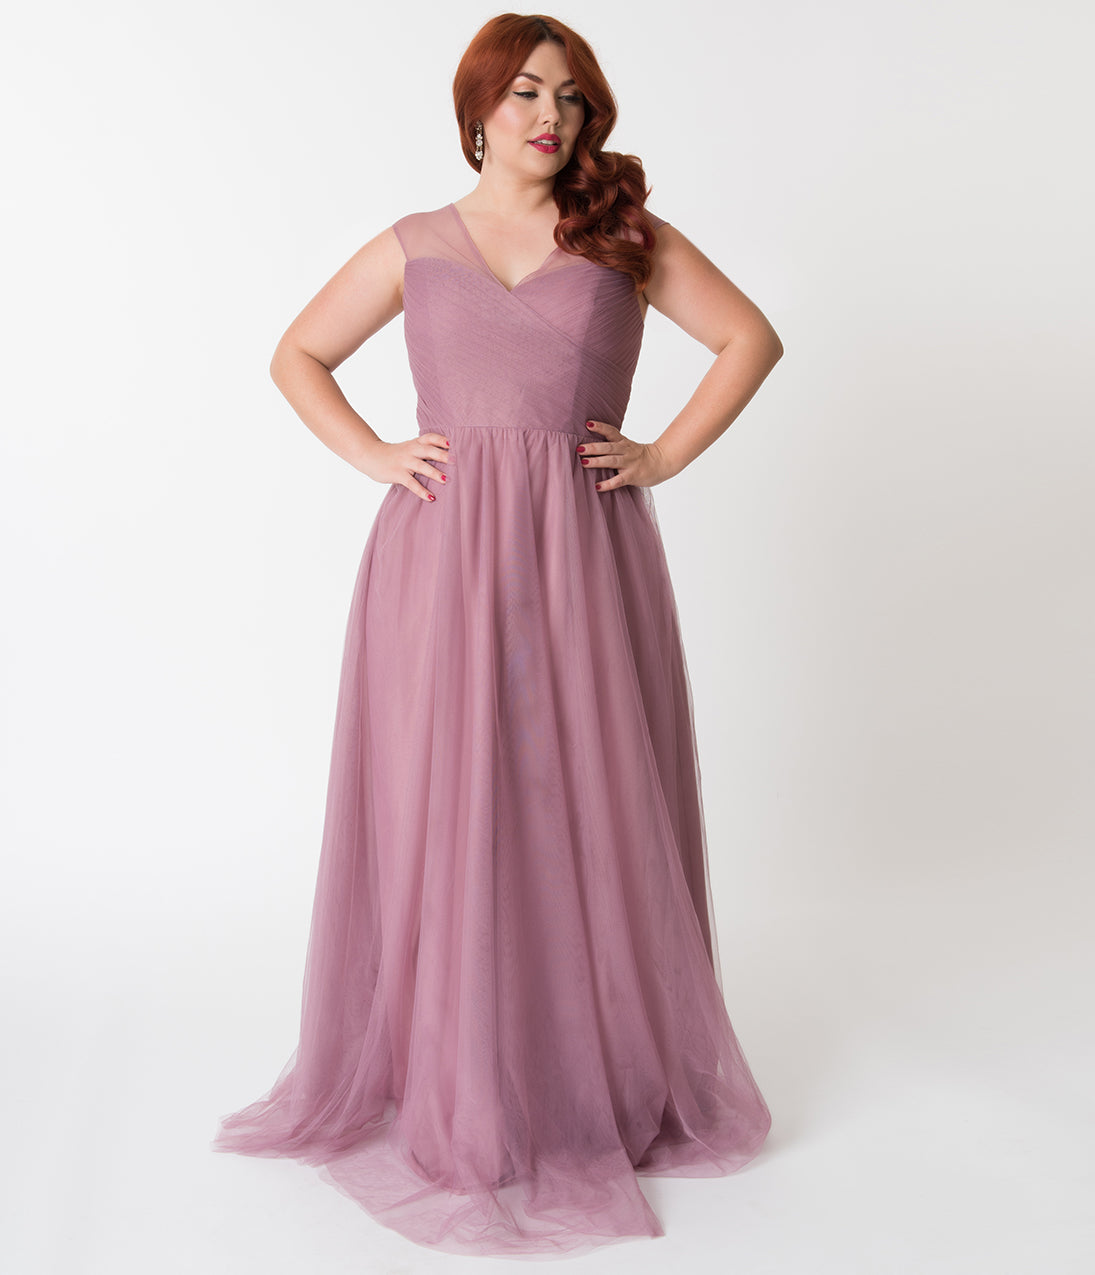 1950s Style Cocktail Dresses & Gowns Plus Size Pink Orchid Mesh Wrapped Sweetheart Neckline Long Dress $110.00 AT vintagedancer.com